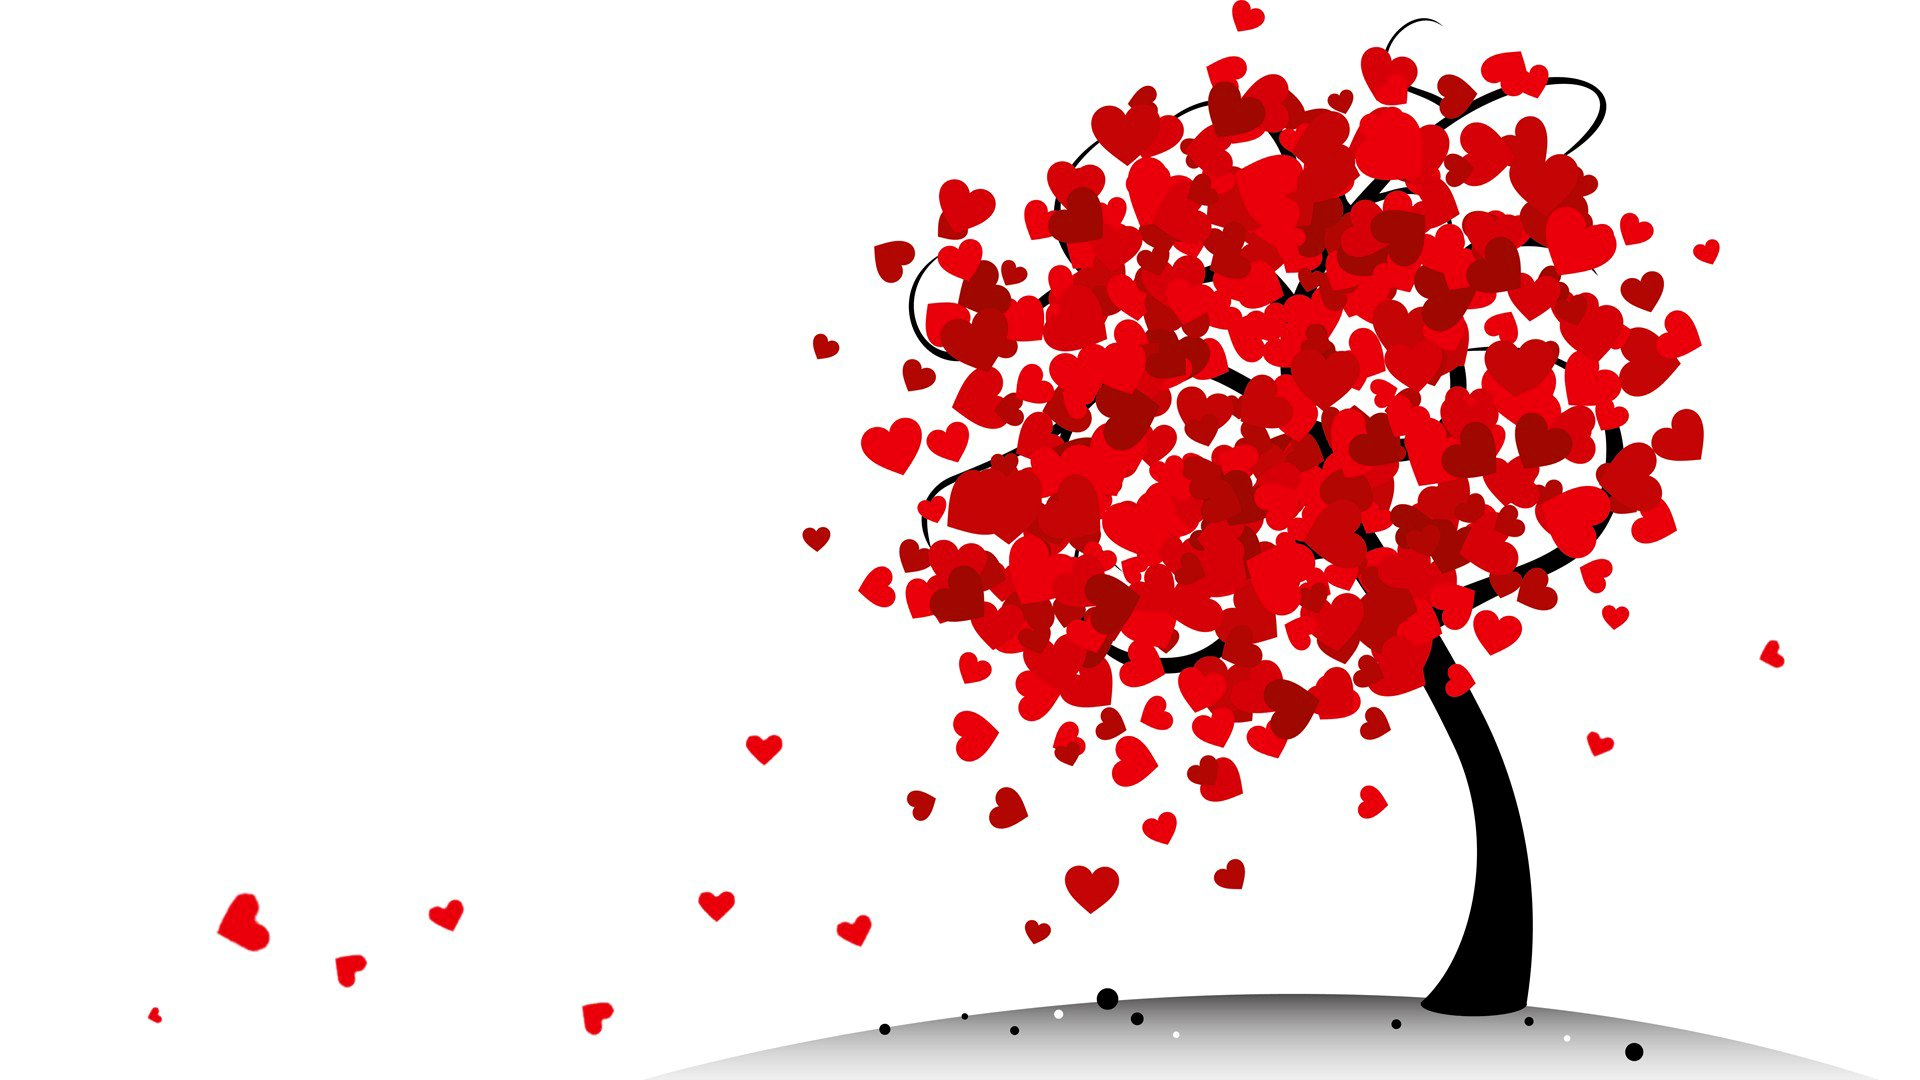 Love Tree Wallpapers : Tree of Hearts Full HD Wallpaper and Background Image 1920x1080 ID:704878